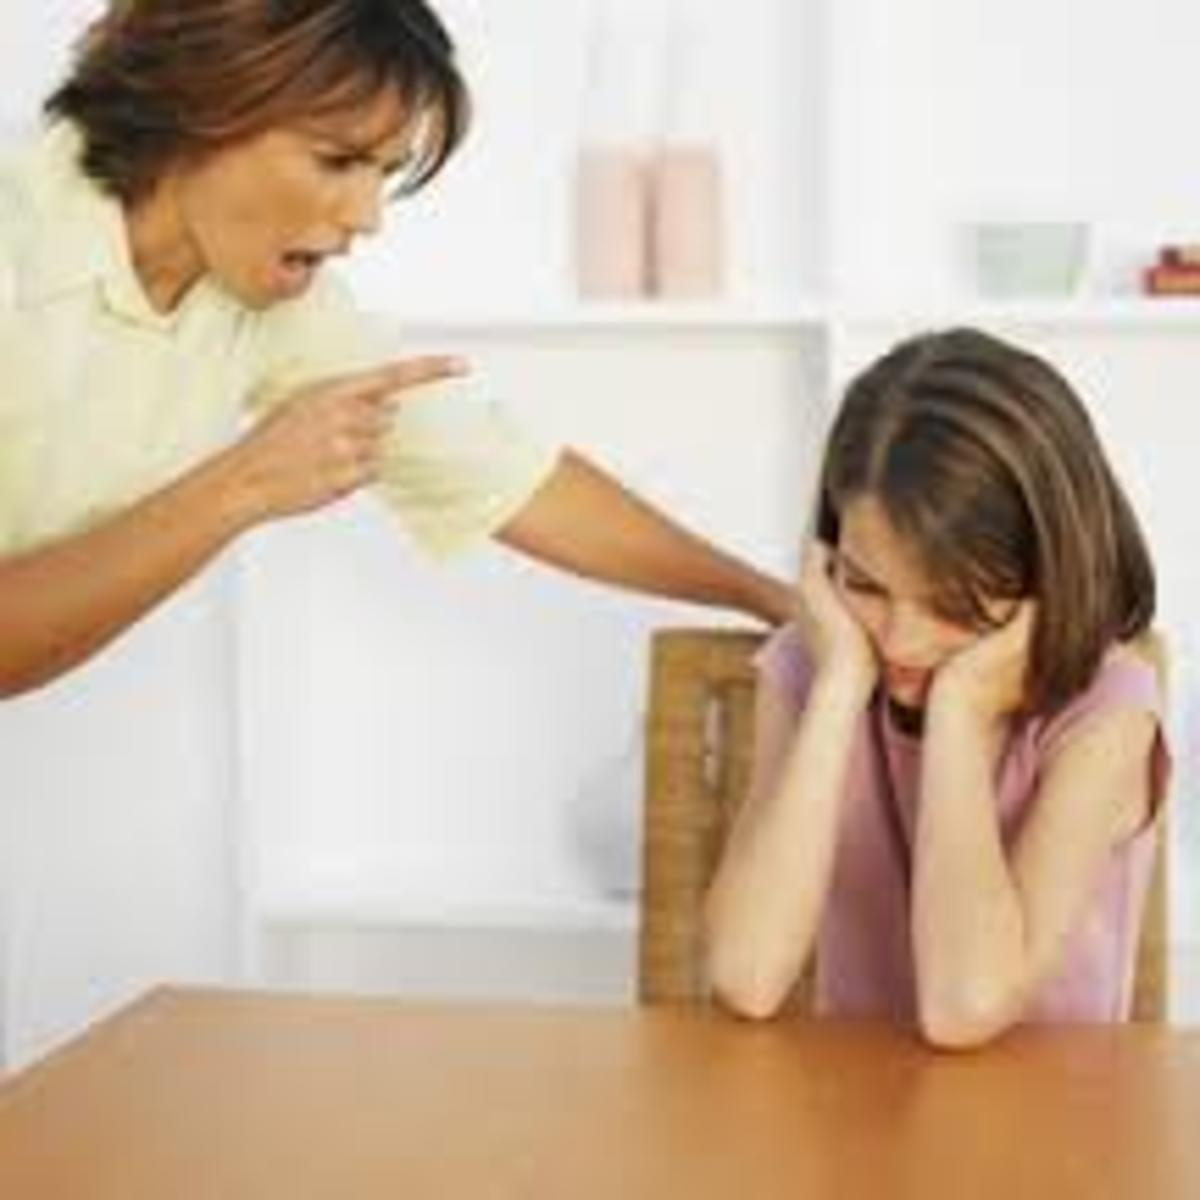 Immature parents see parenting as a form of power play & other forms of upmanship between them& their children. They feel that parenting is THEIR liberty to exercise THEIR MIGHT & RIGHT to do as they will to their children.